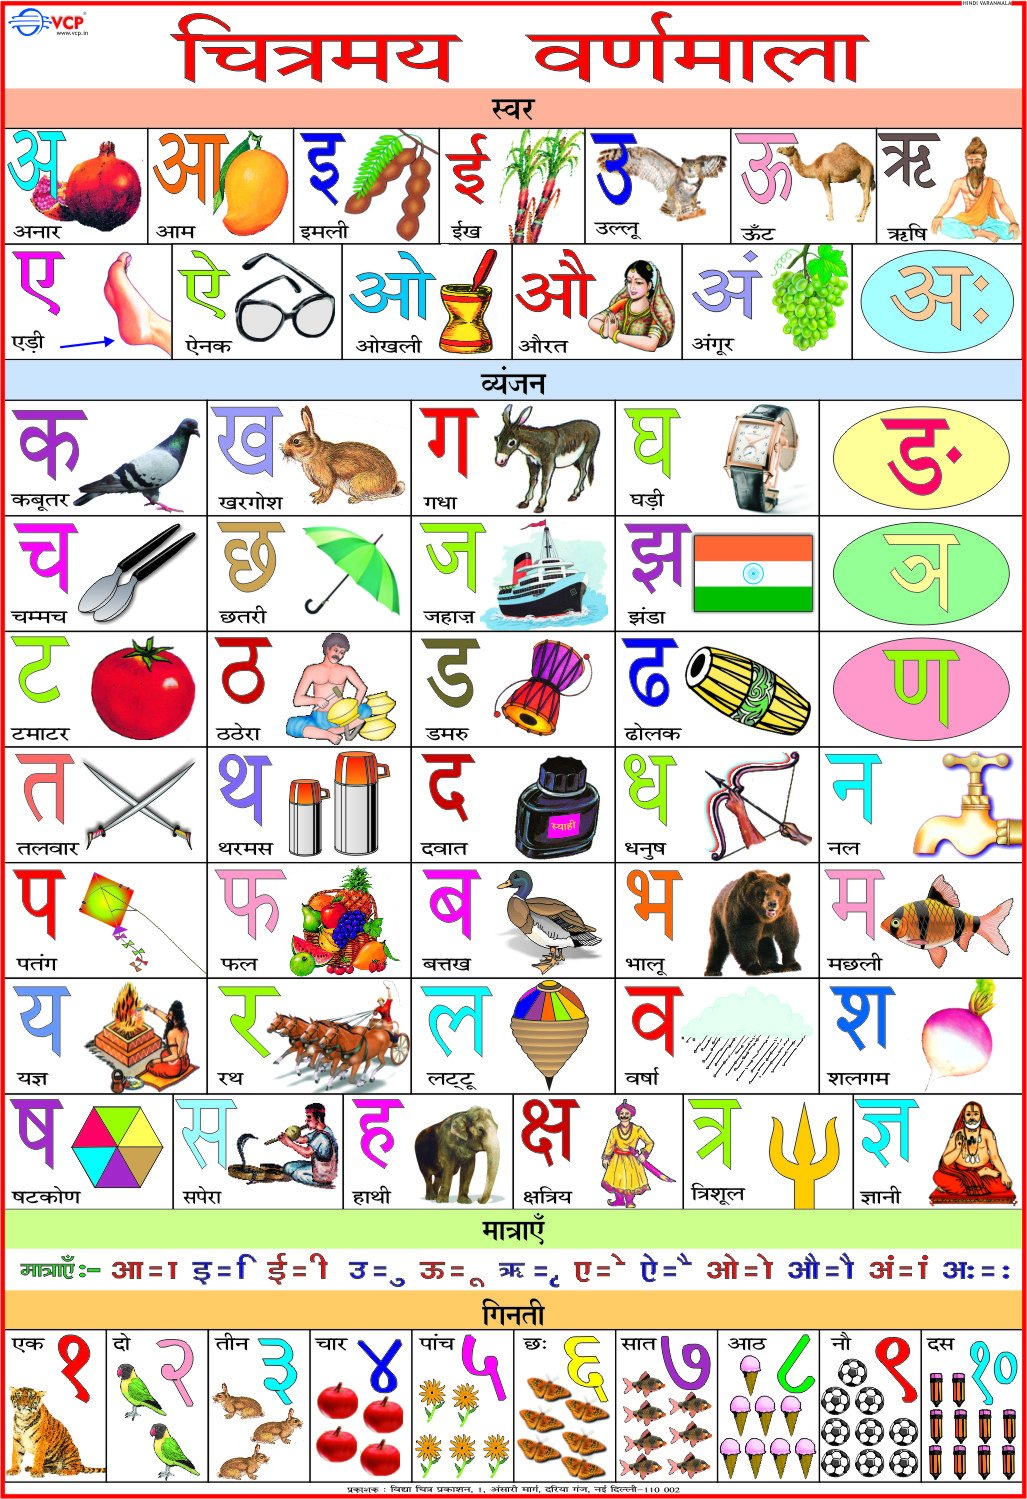 Amazon.in: Buy Alphabet Hindi Chart ( 70 x 100 cm ) Book Online at